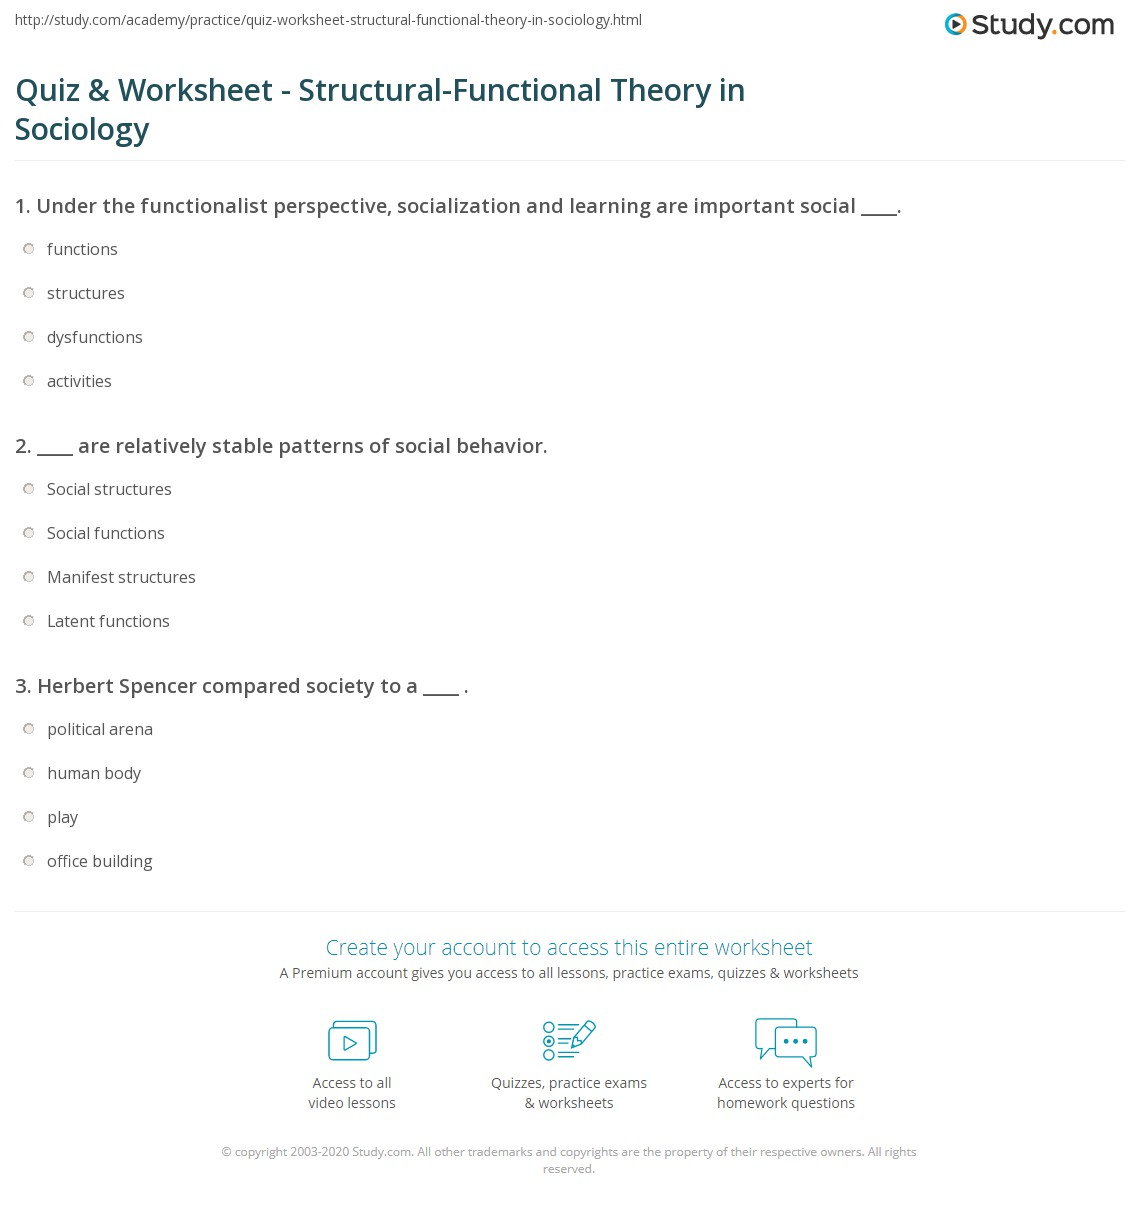 Quiz Worksheet Structural Functional Theory In Sociology